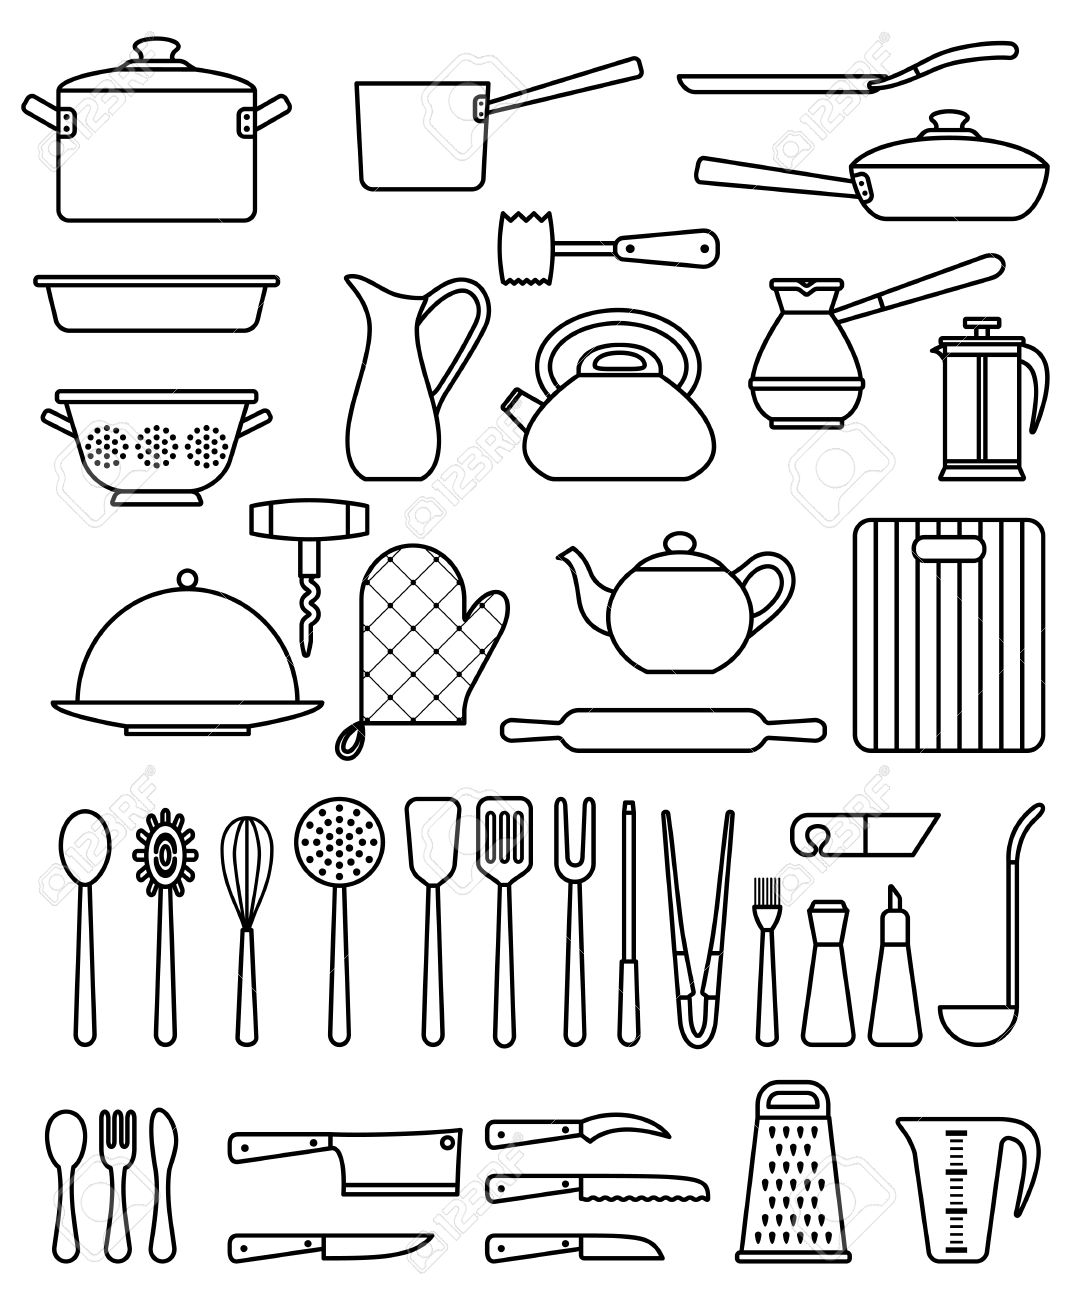 Kitchen equipment and their uses - Here Are Some Utensils Or Tools Used In Baljinder Chohan S Kitchen With Their Uses